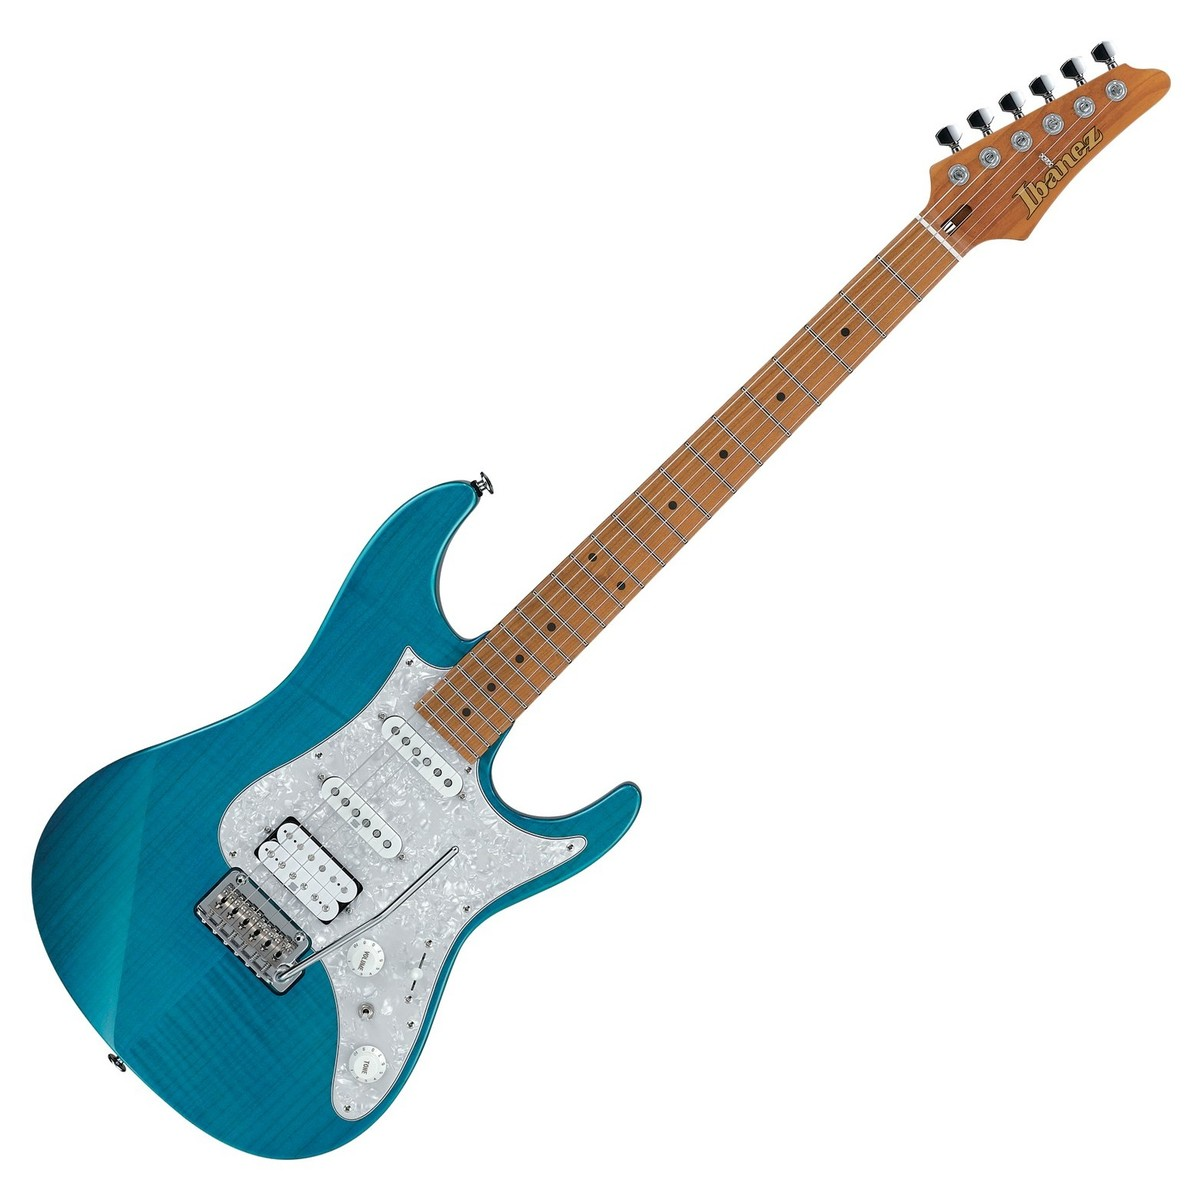 ibanez az2204f prestige 2018 trans aqua blue at gear4music. Black Bedroom Furniture Sets. Home Design Ideas